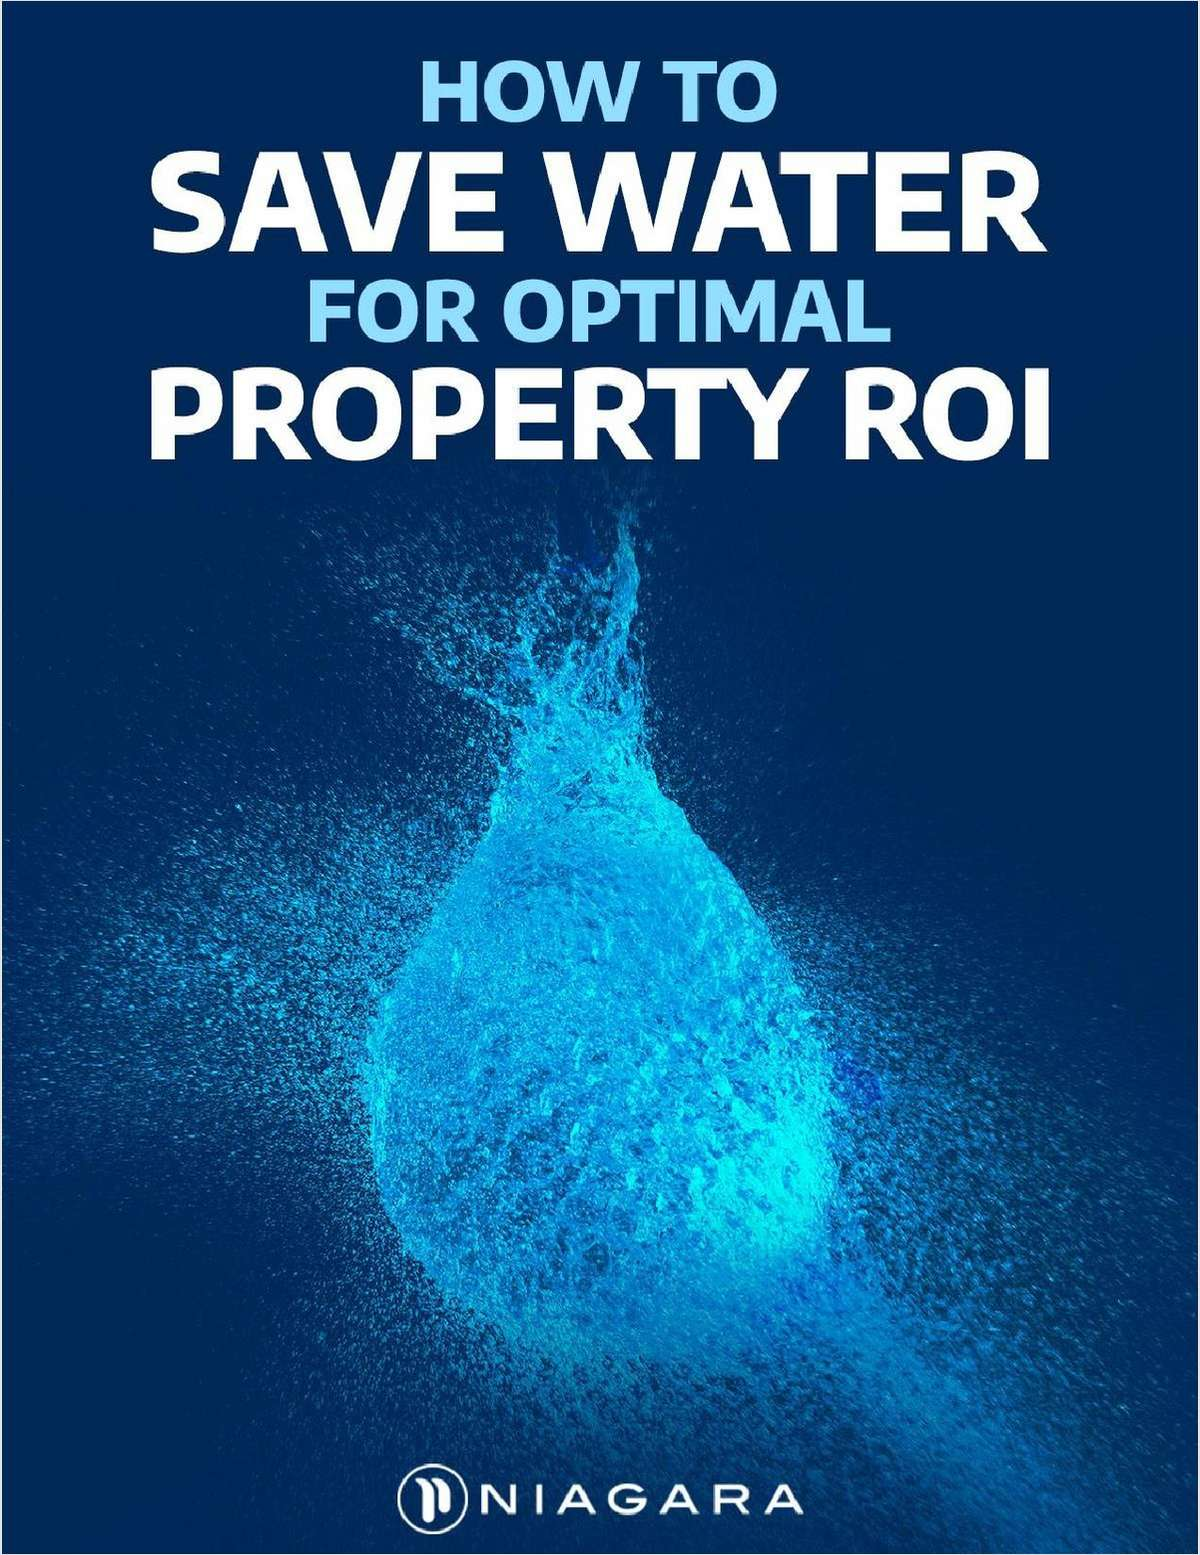 How to Save Water for Optimal Property ROI